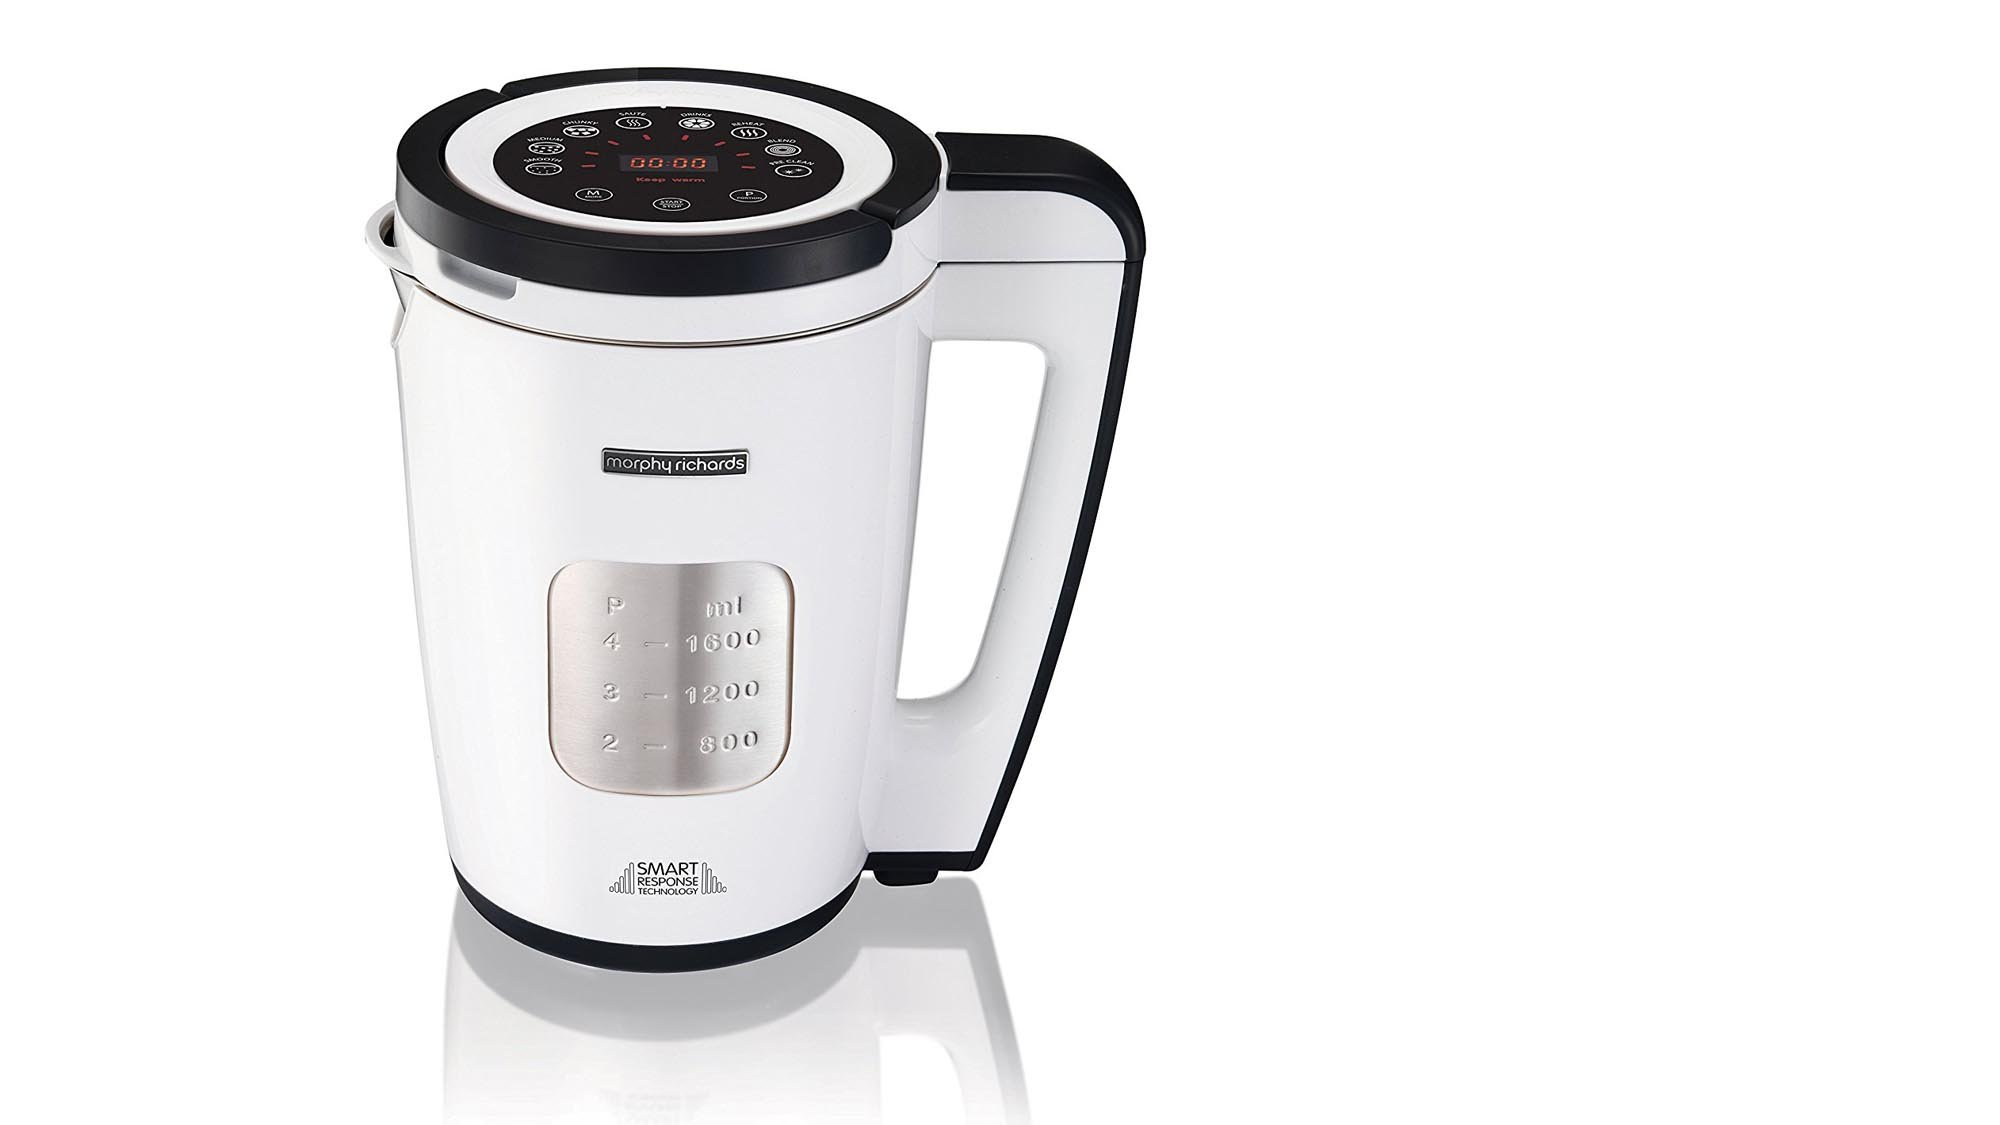 2019475f636 This kettle-style soup maker will make leftover soup a thing of the past  thanks to its innovative portion control – instead of having measurements  on the ...